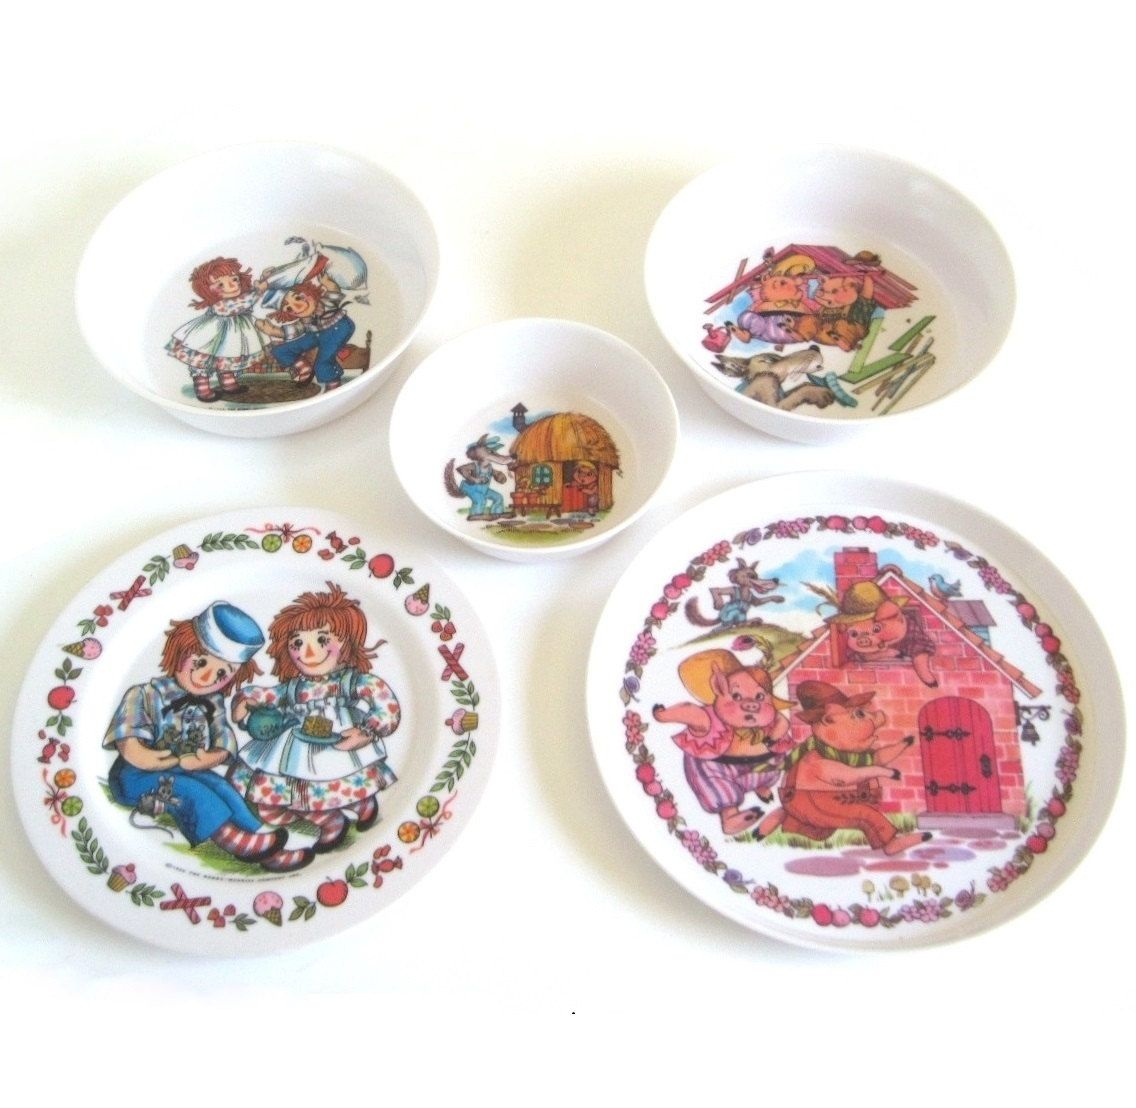 3 Little Pigs Plastic Dishes Oneida Deluxe 3101 Plate 3243 3258 Bowls Or Raggedy Ann Children 39 S Melamine Dish Set Melamine Dishes Rabbit Dishes Little Pigs